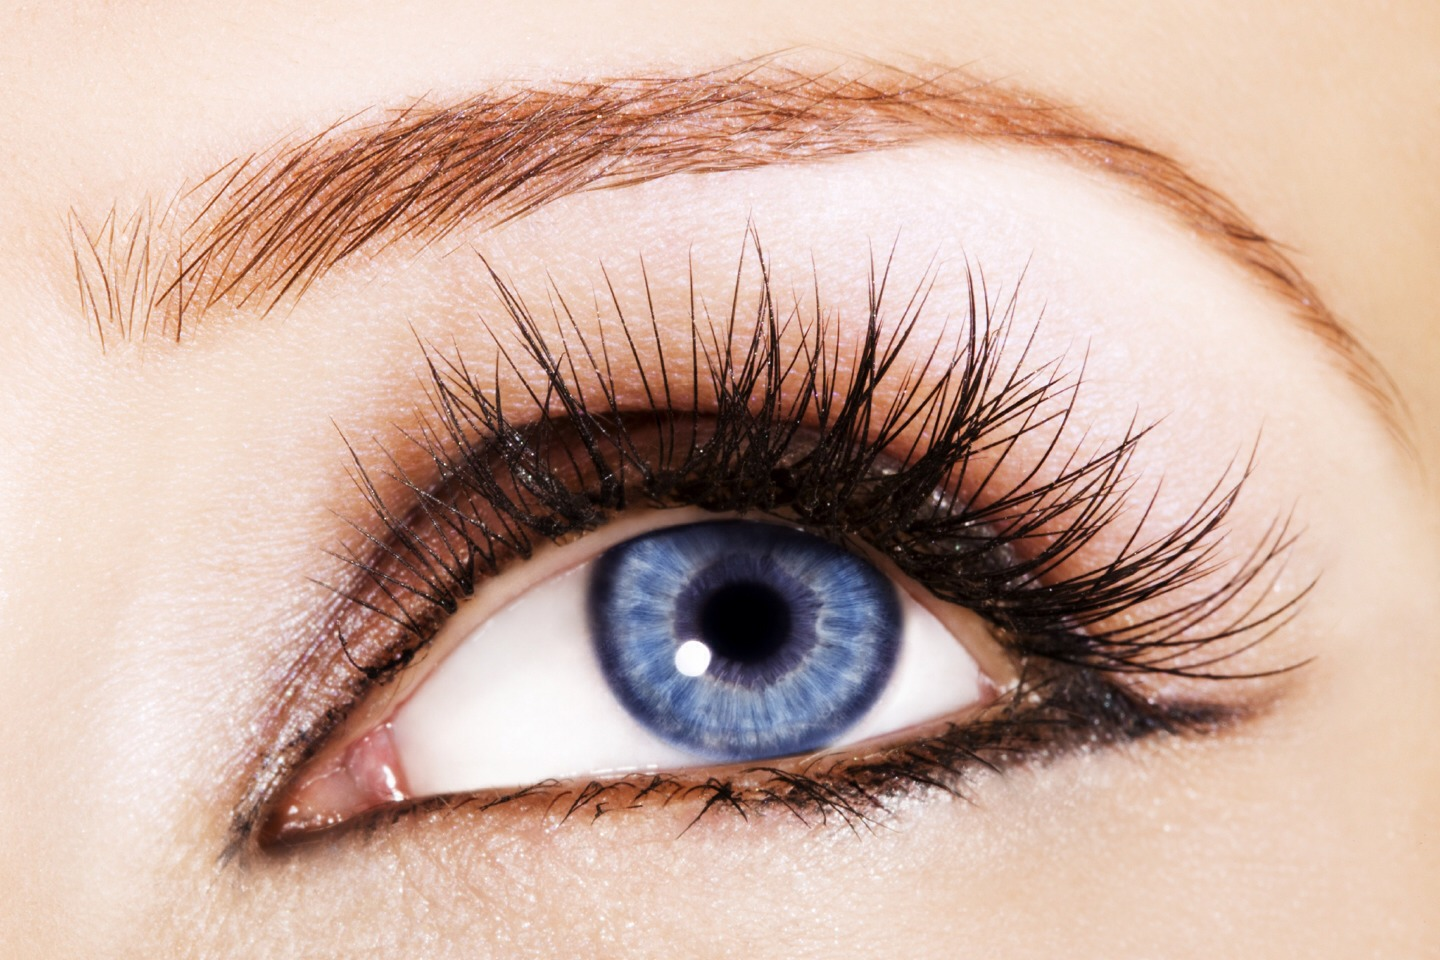 Their you go,your long eyelashes